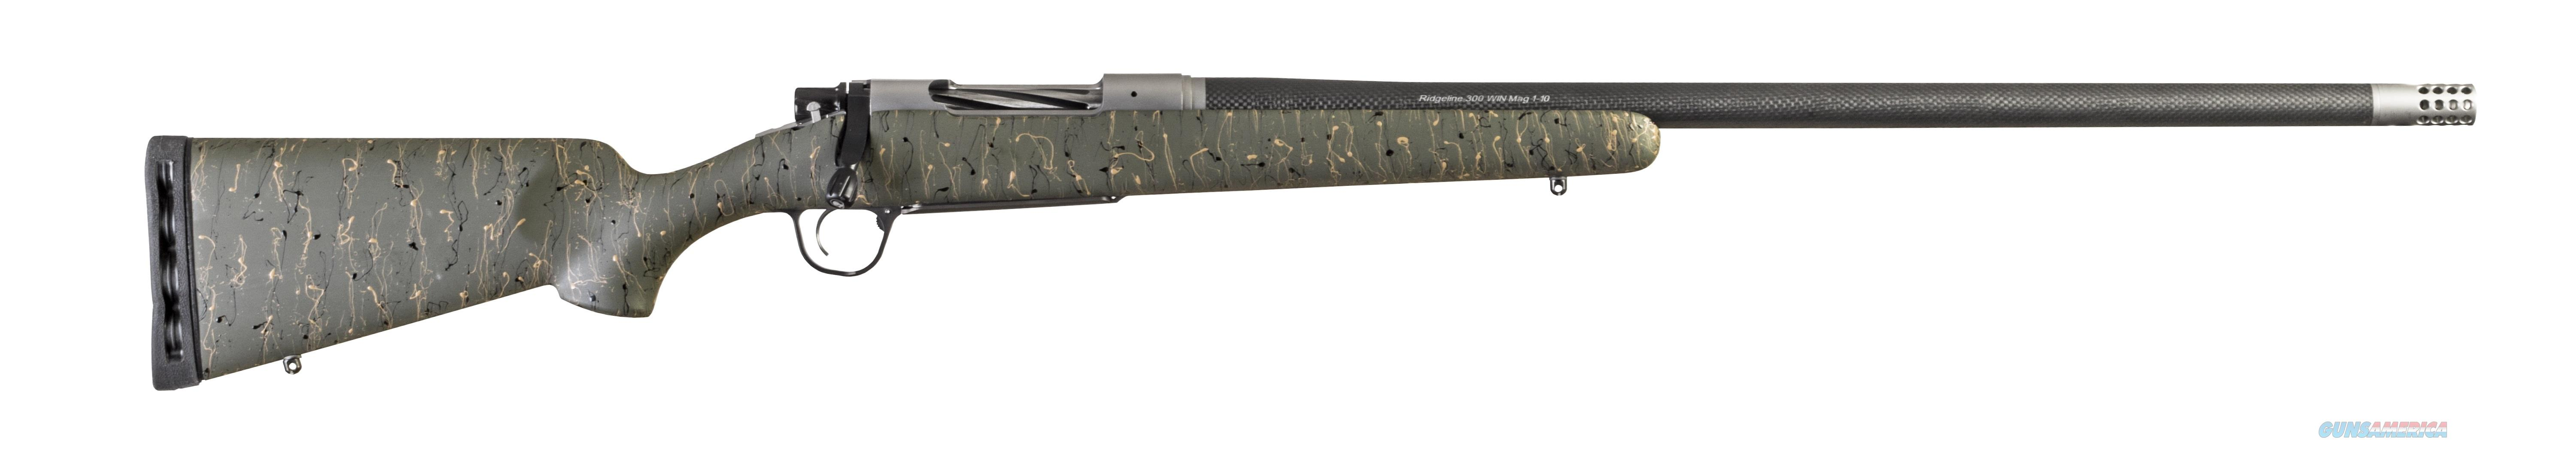 Christensen Arms RIDGELINE 308WIN GRN/BLK 24 CA10299-414413  Guns > Rifles > C Misc Rifles